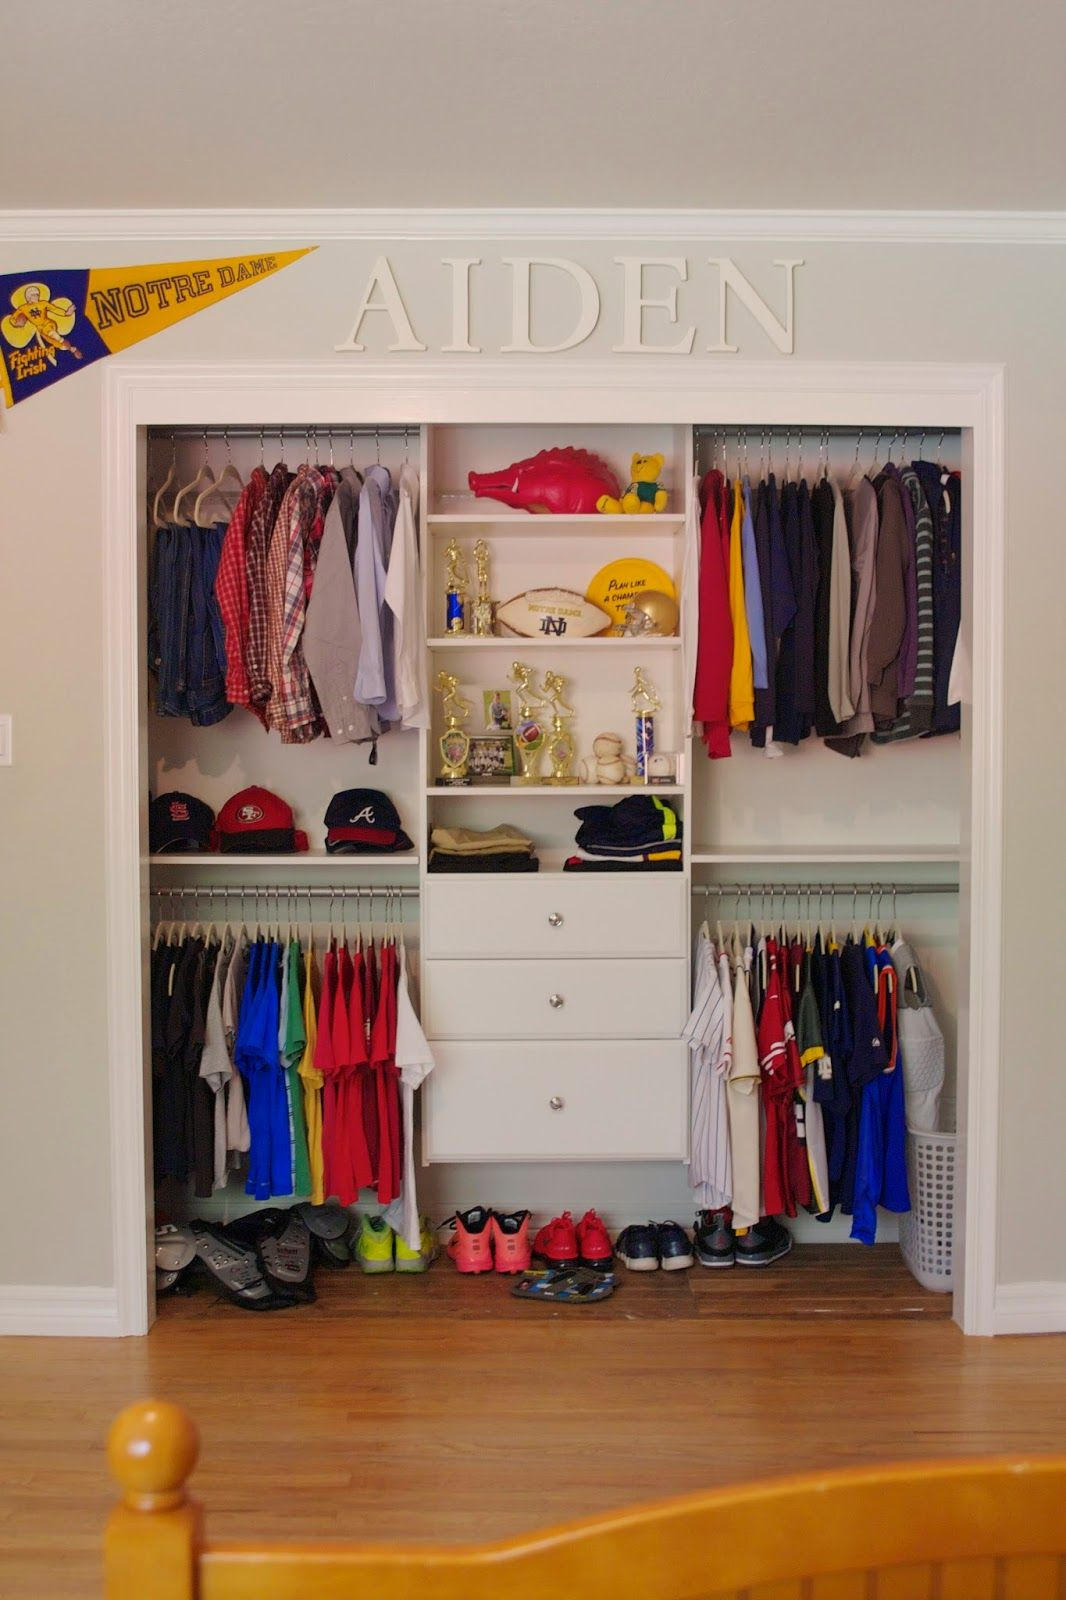 depot home on ideas idea fascinating closet shelving innovative racks unusual